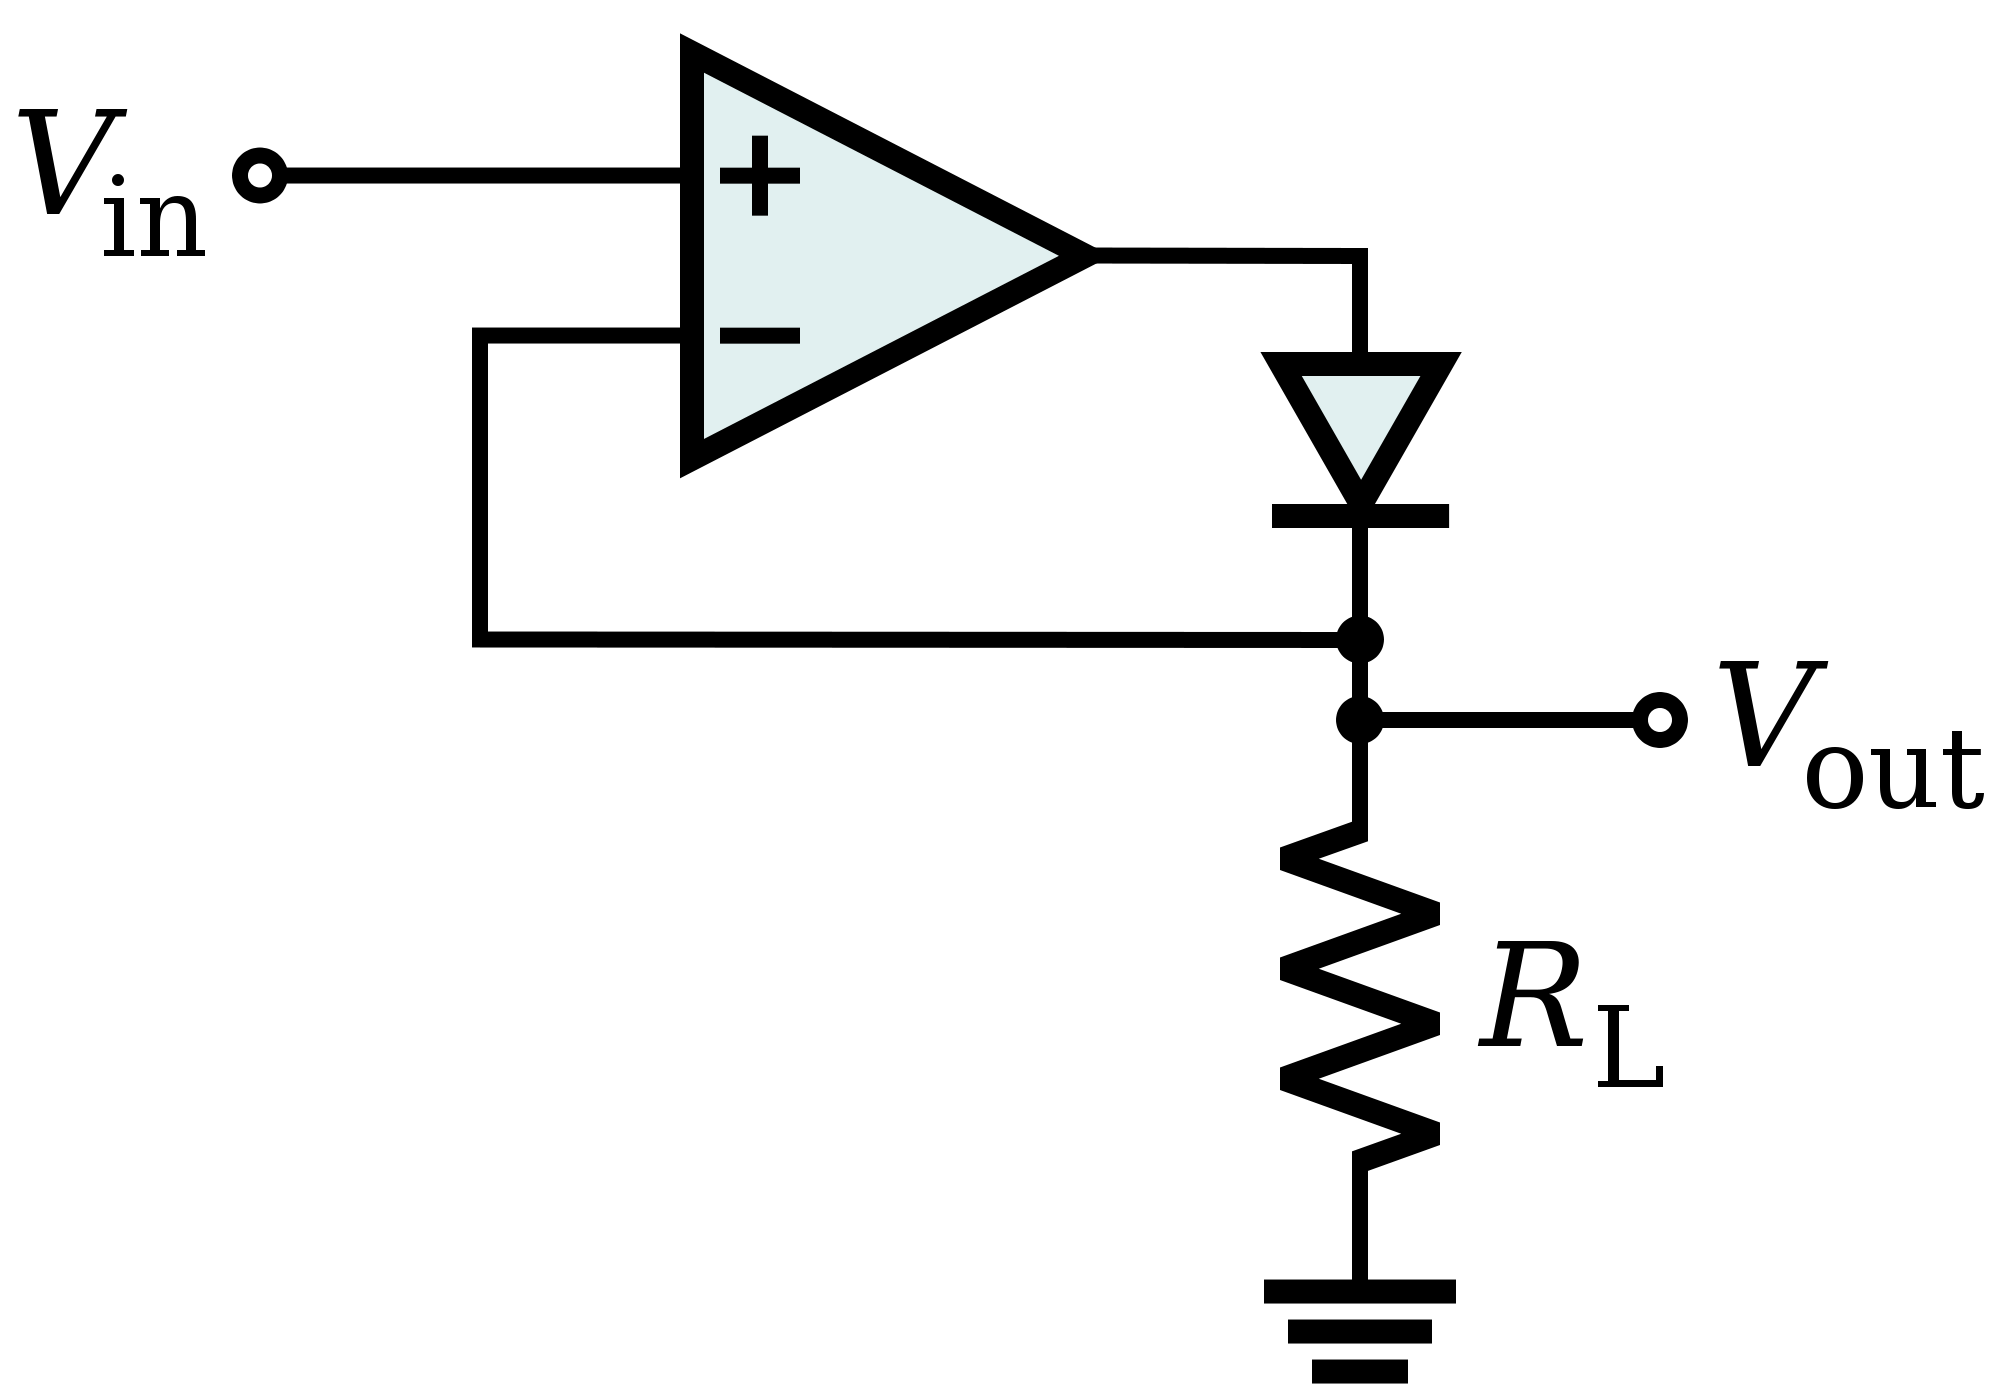 Half Wave Rectifier Schematic